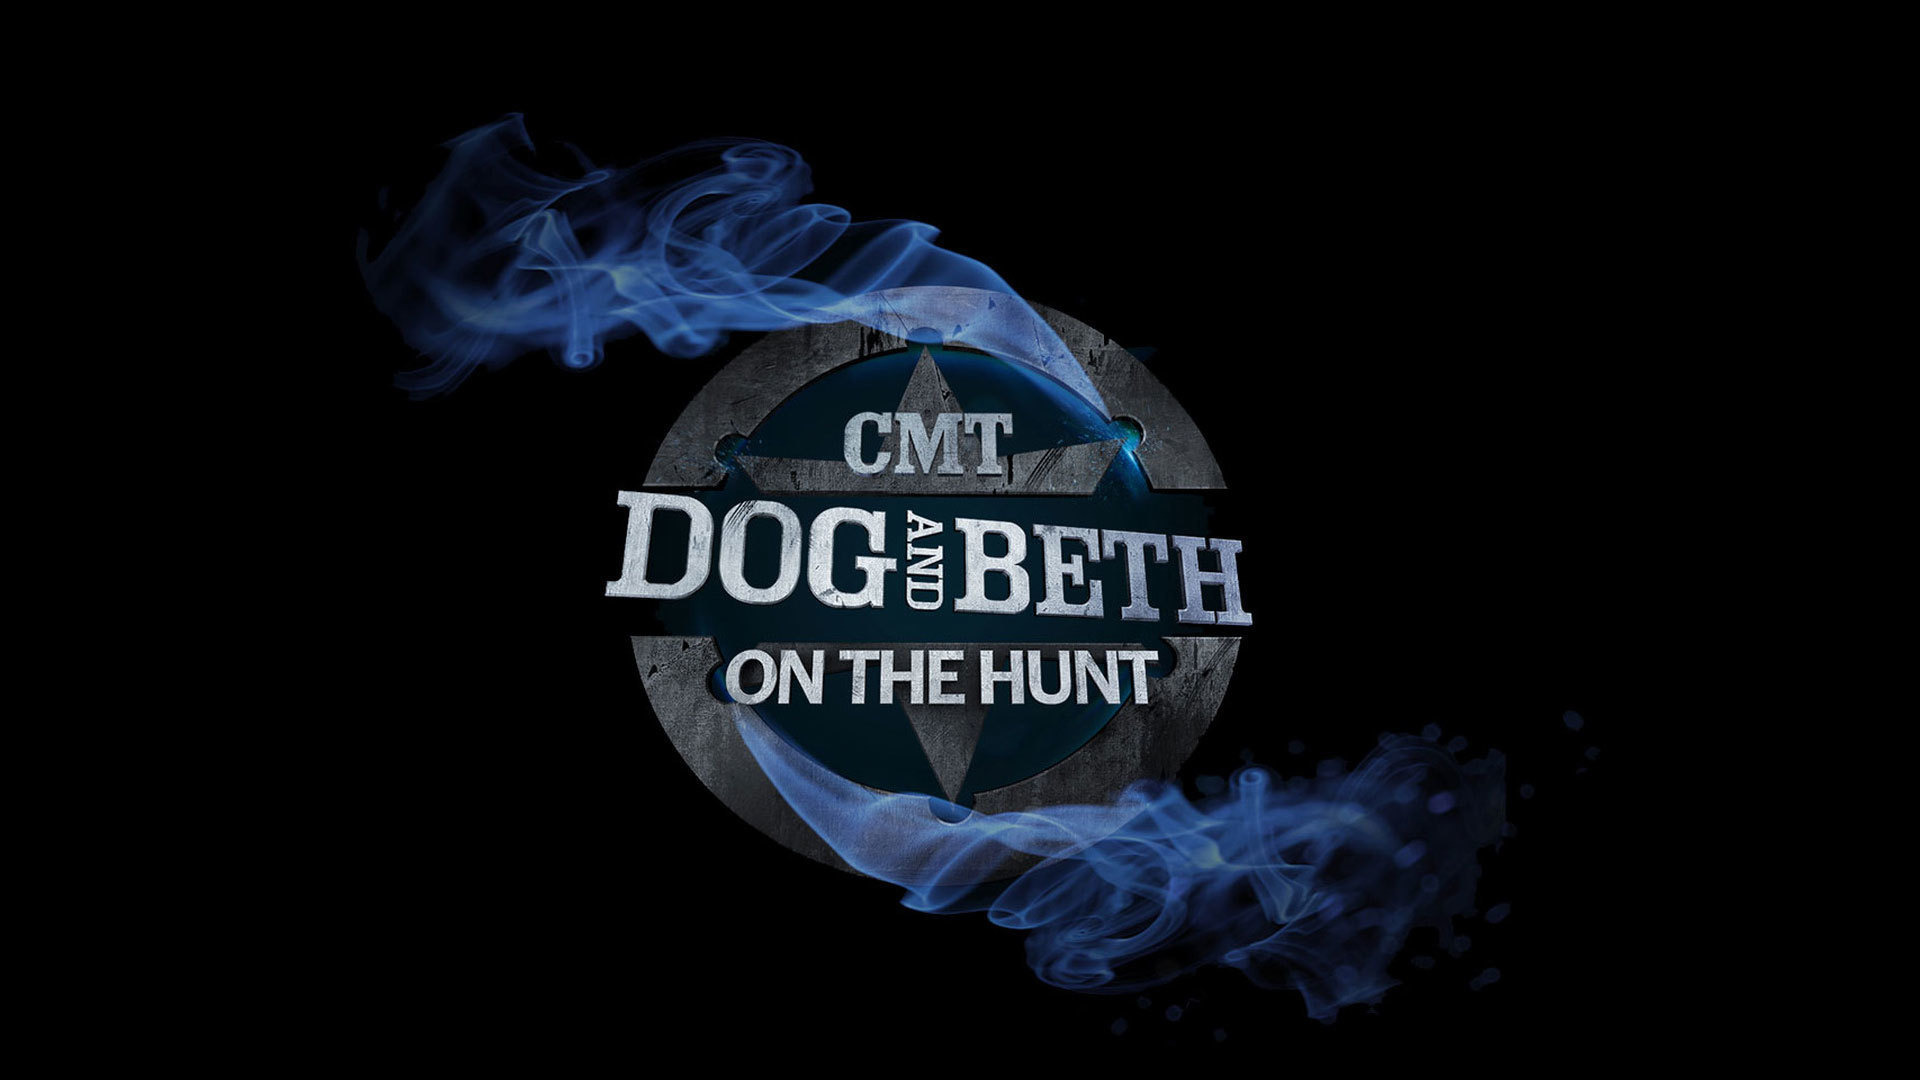 Show Dog and Beth: On the Hunt